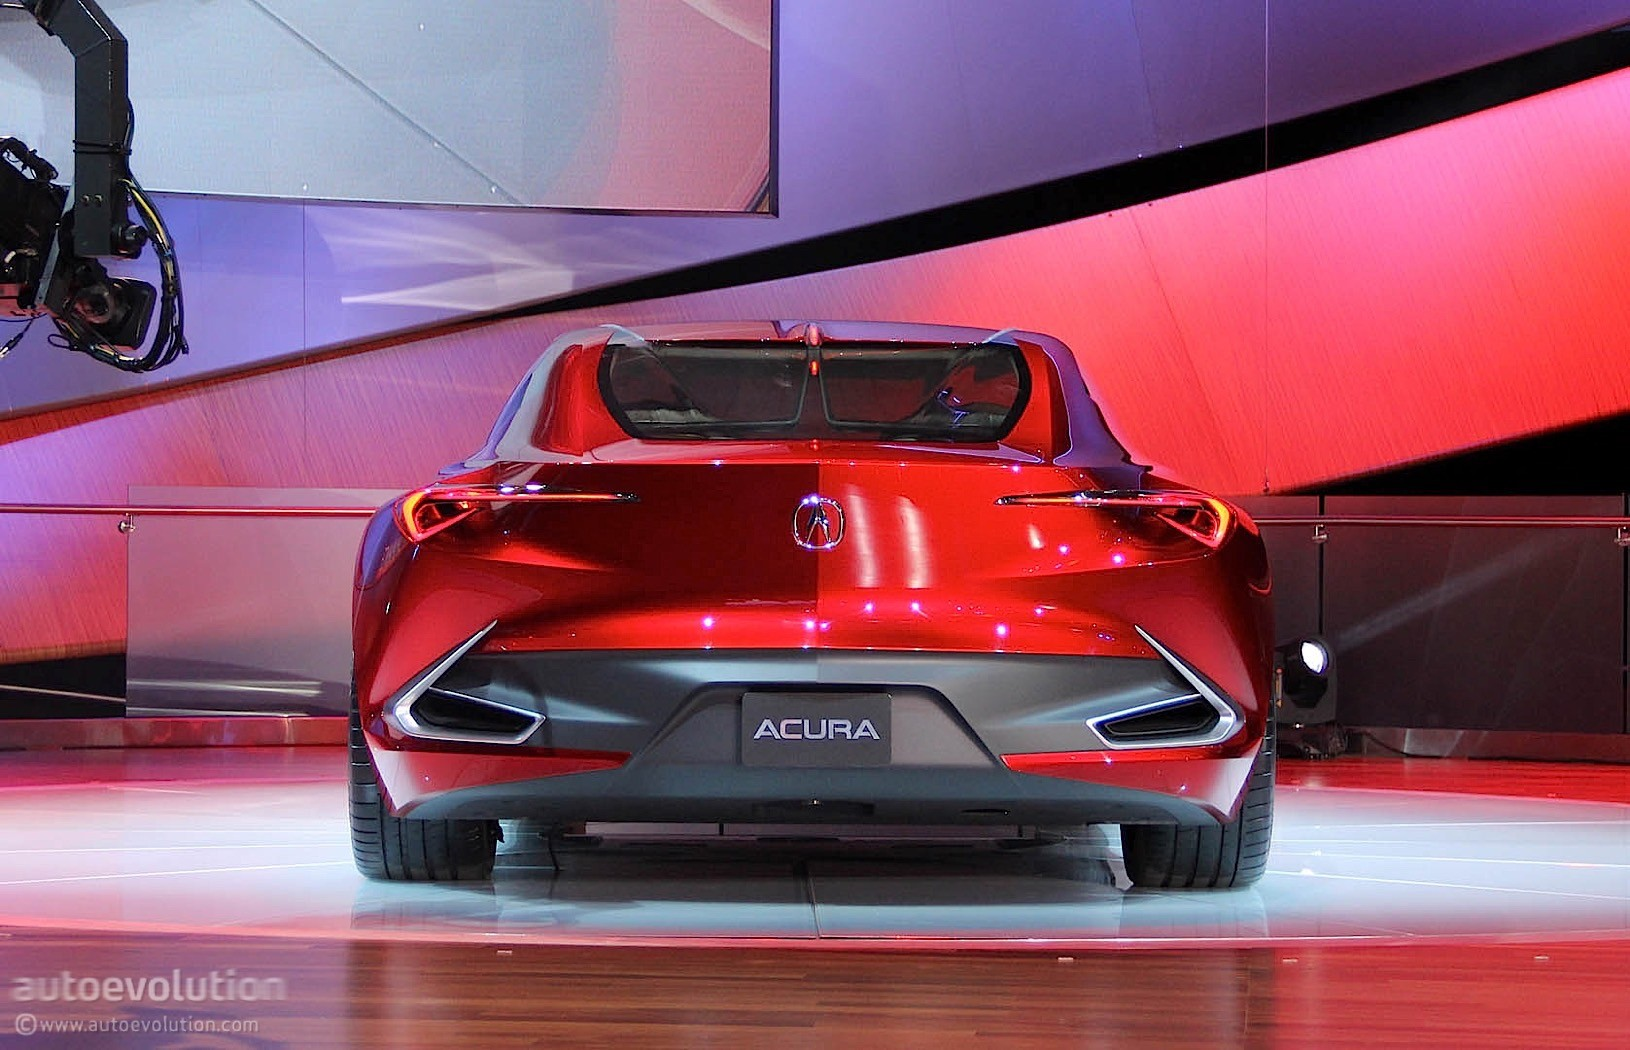 Acura's Next-Generation RLX To Be Inspired By Precision ...